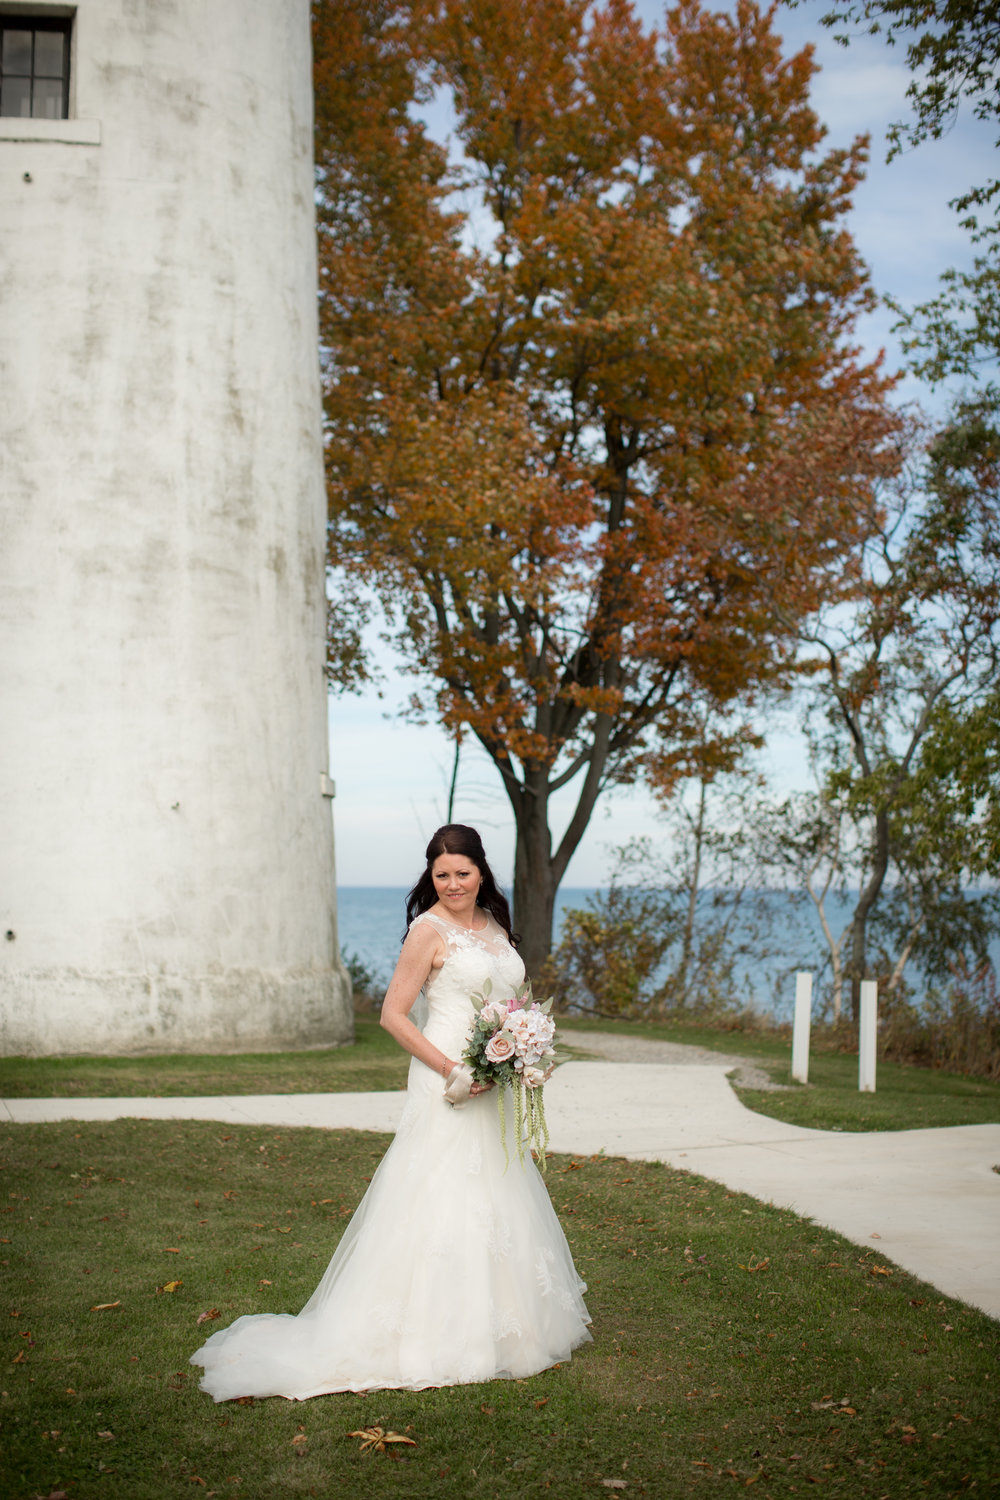 Bride posing next to light house during wedding photos with a St Clair Shores Michigan photographer